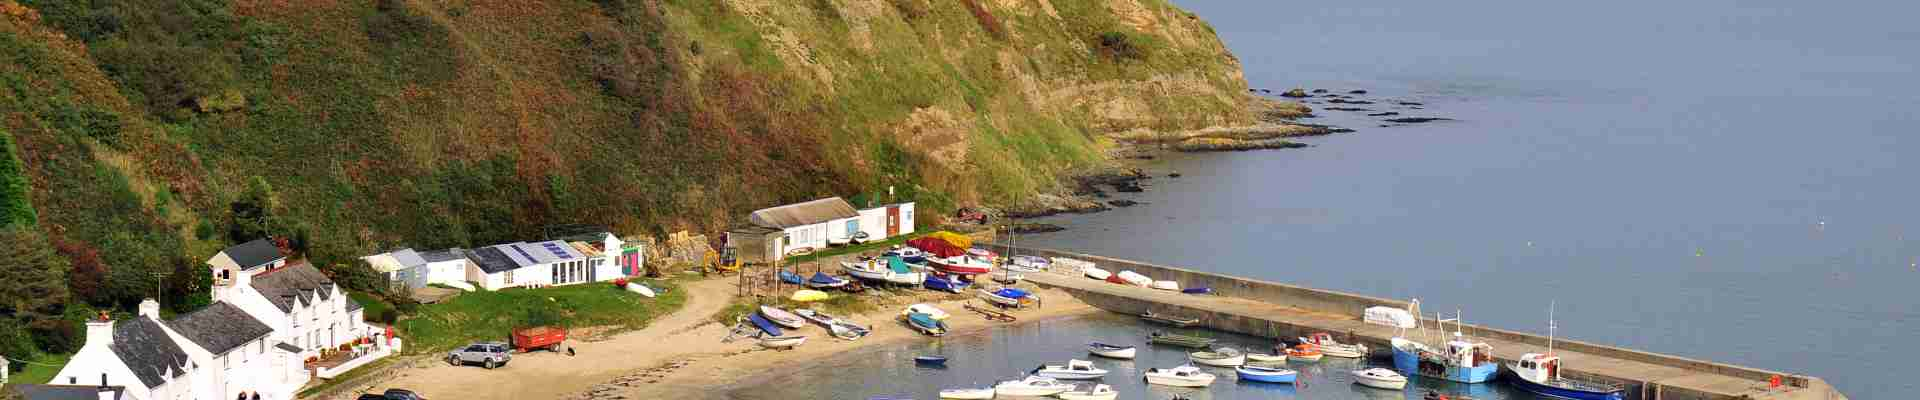 Nefyn Holiday Cottages